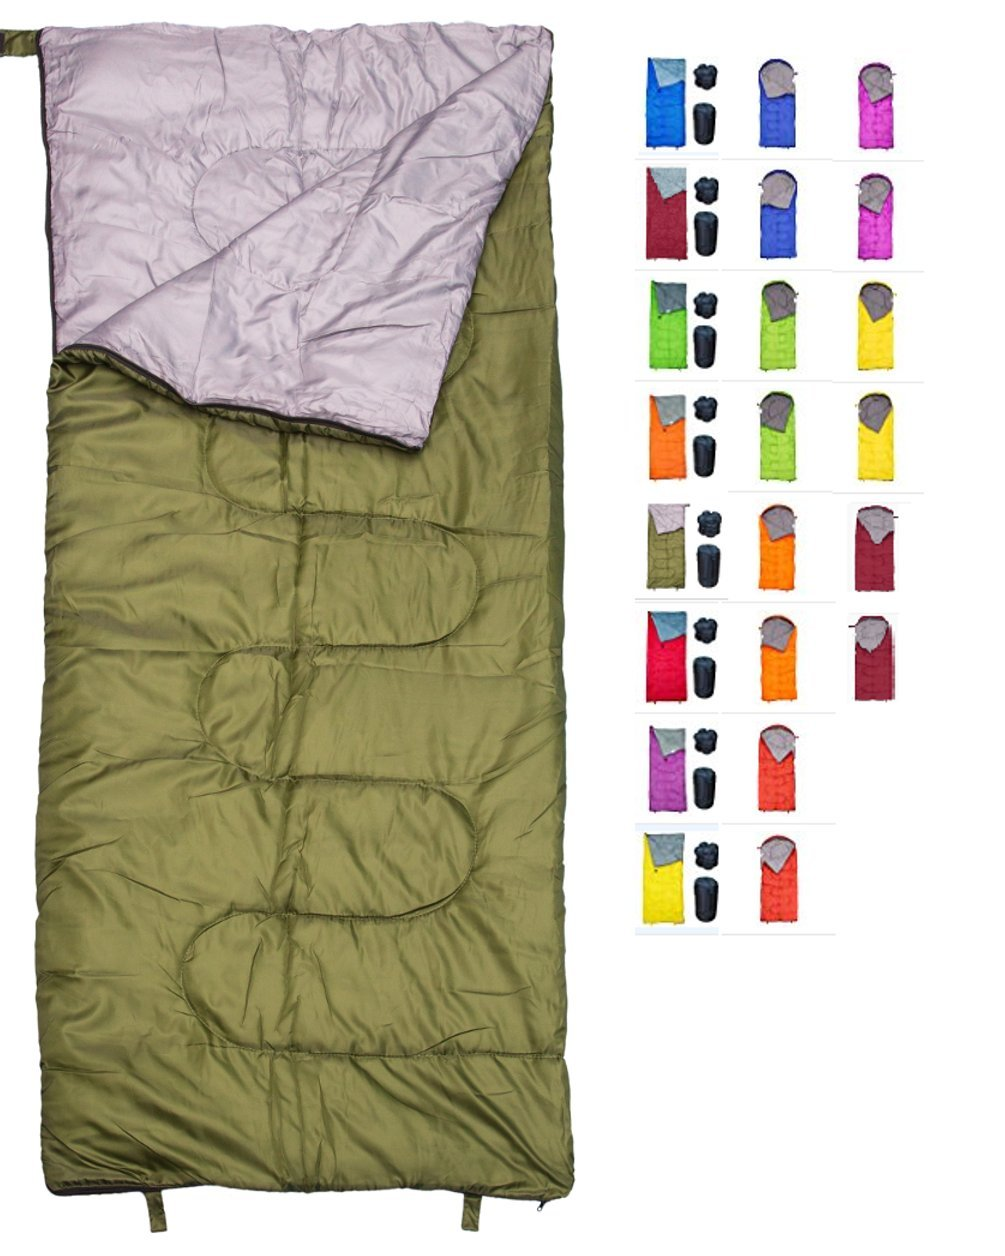 REVALCAMP Lightweight Sleeping Bag - Army Green - Indoor & Outdoor use. Great for Kids, Teens & Adults. Ultra Light and Compact Bags are Perfect for Hiking, Backpacking, Camping & Travel.